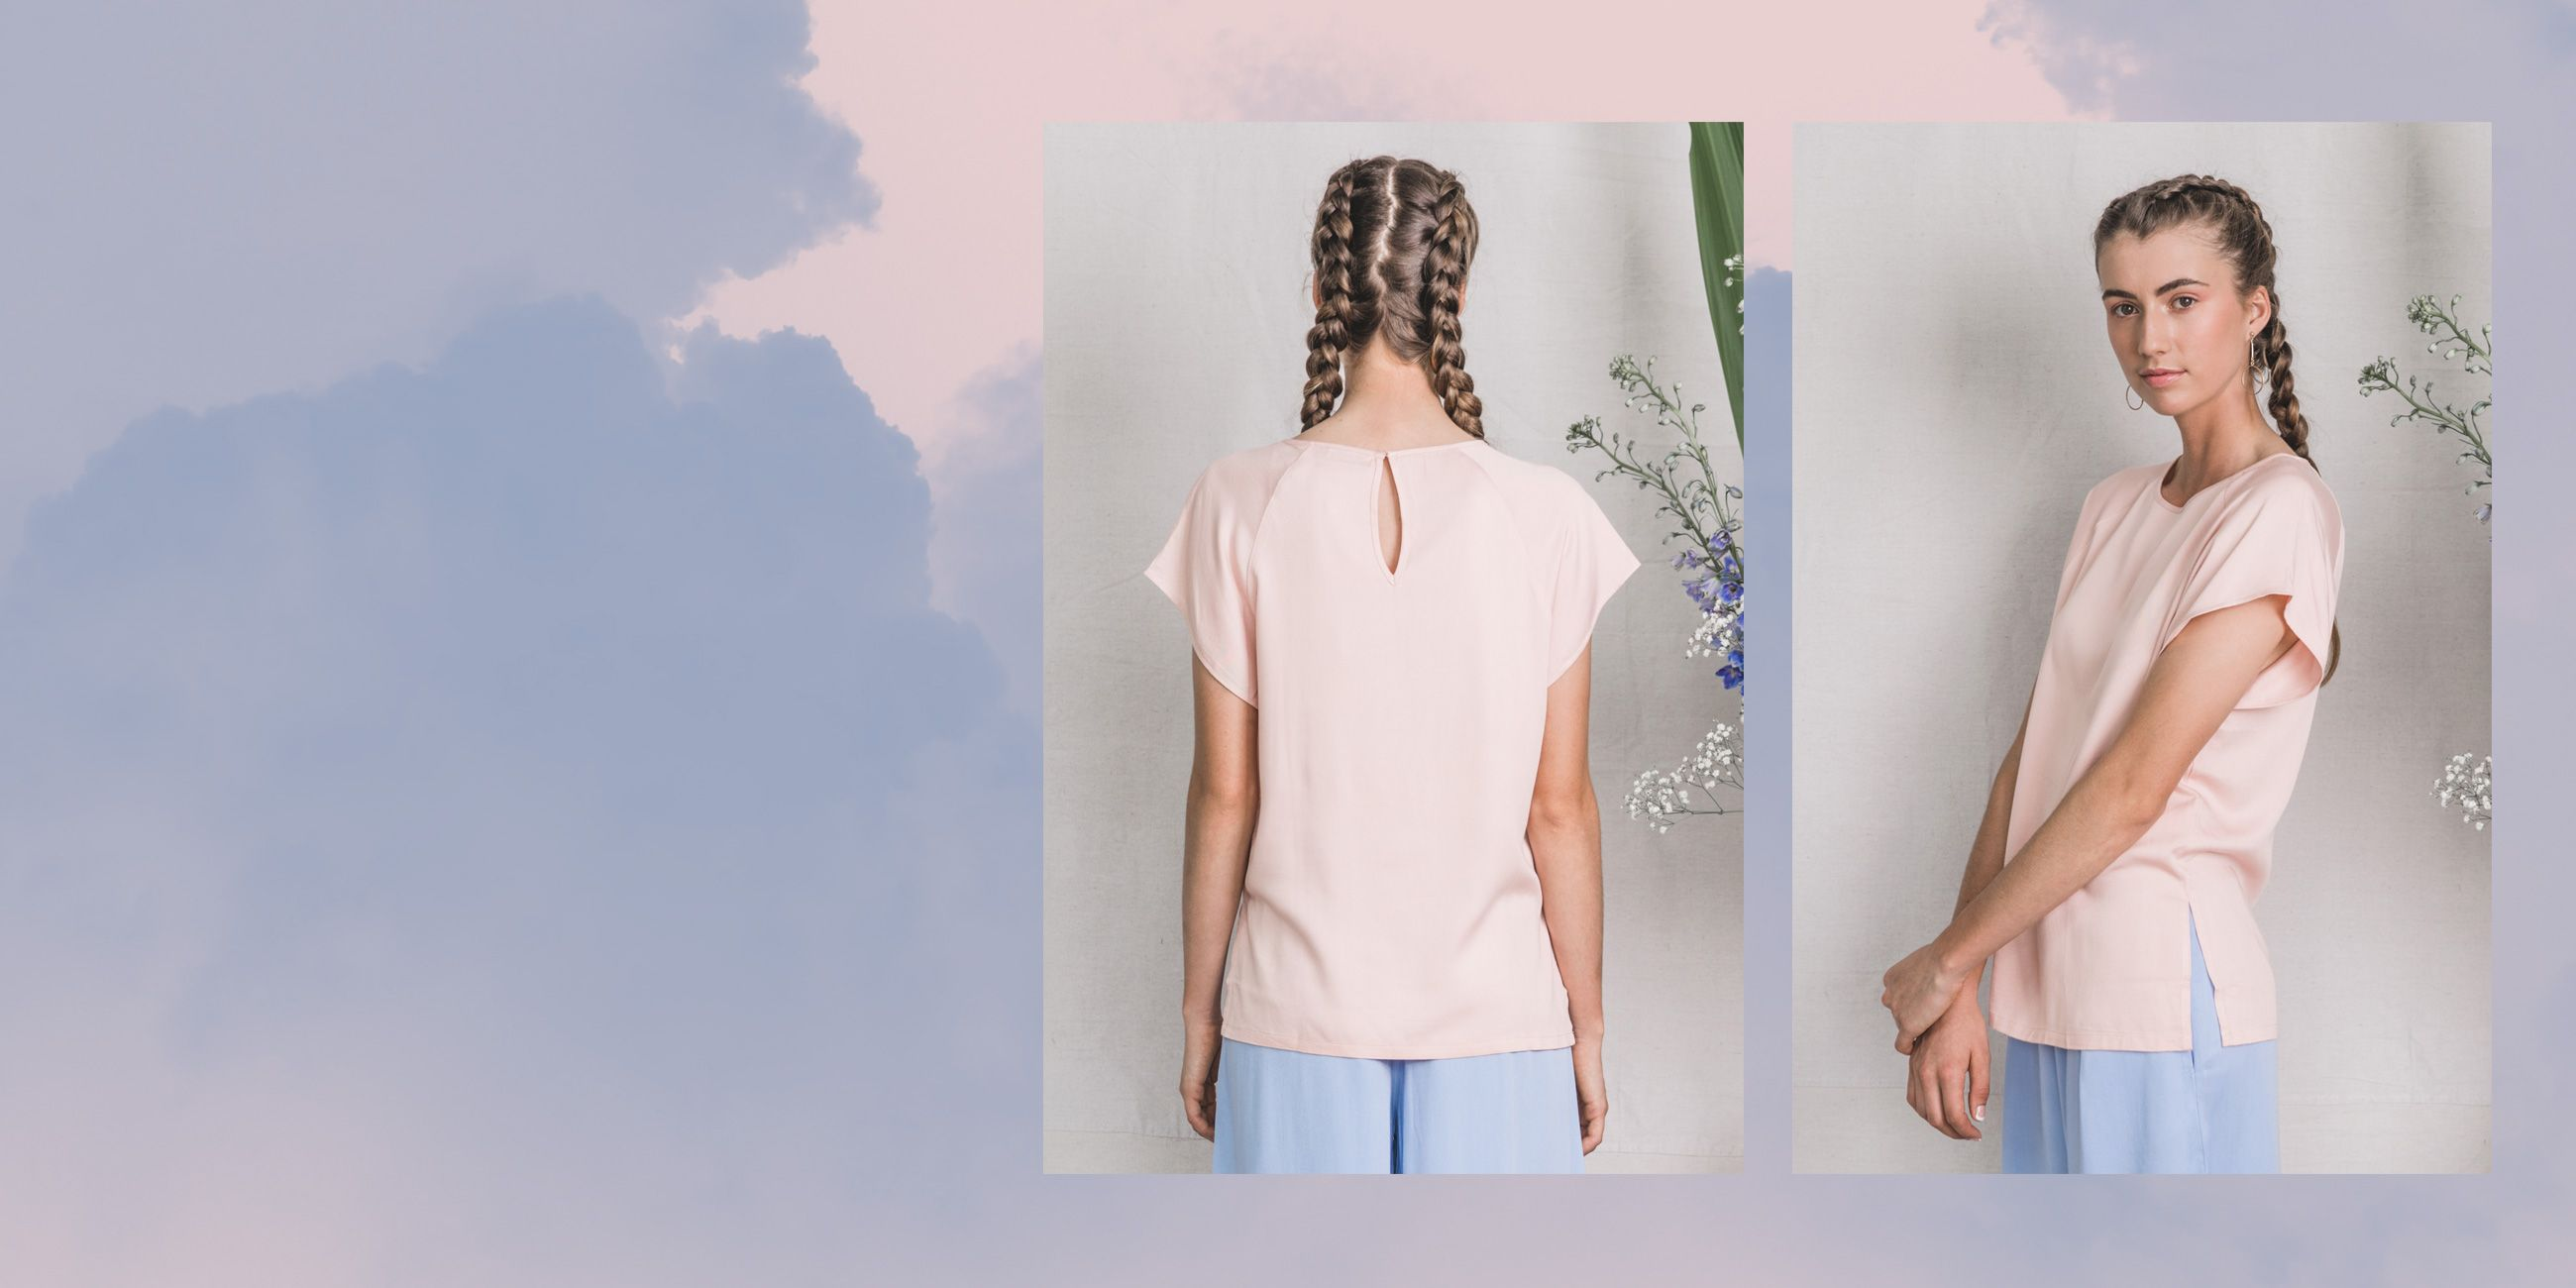 Altair Bamboo Top in Rose Quartz – The Great Beyond 2